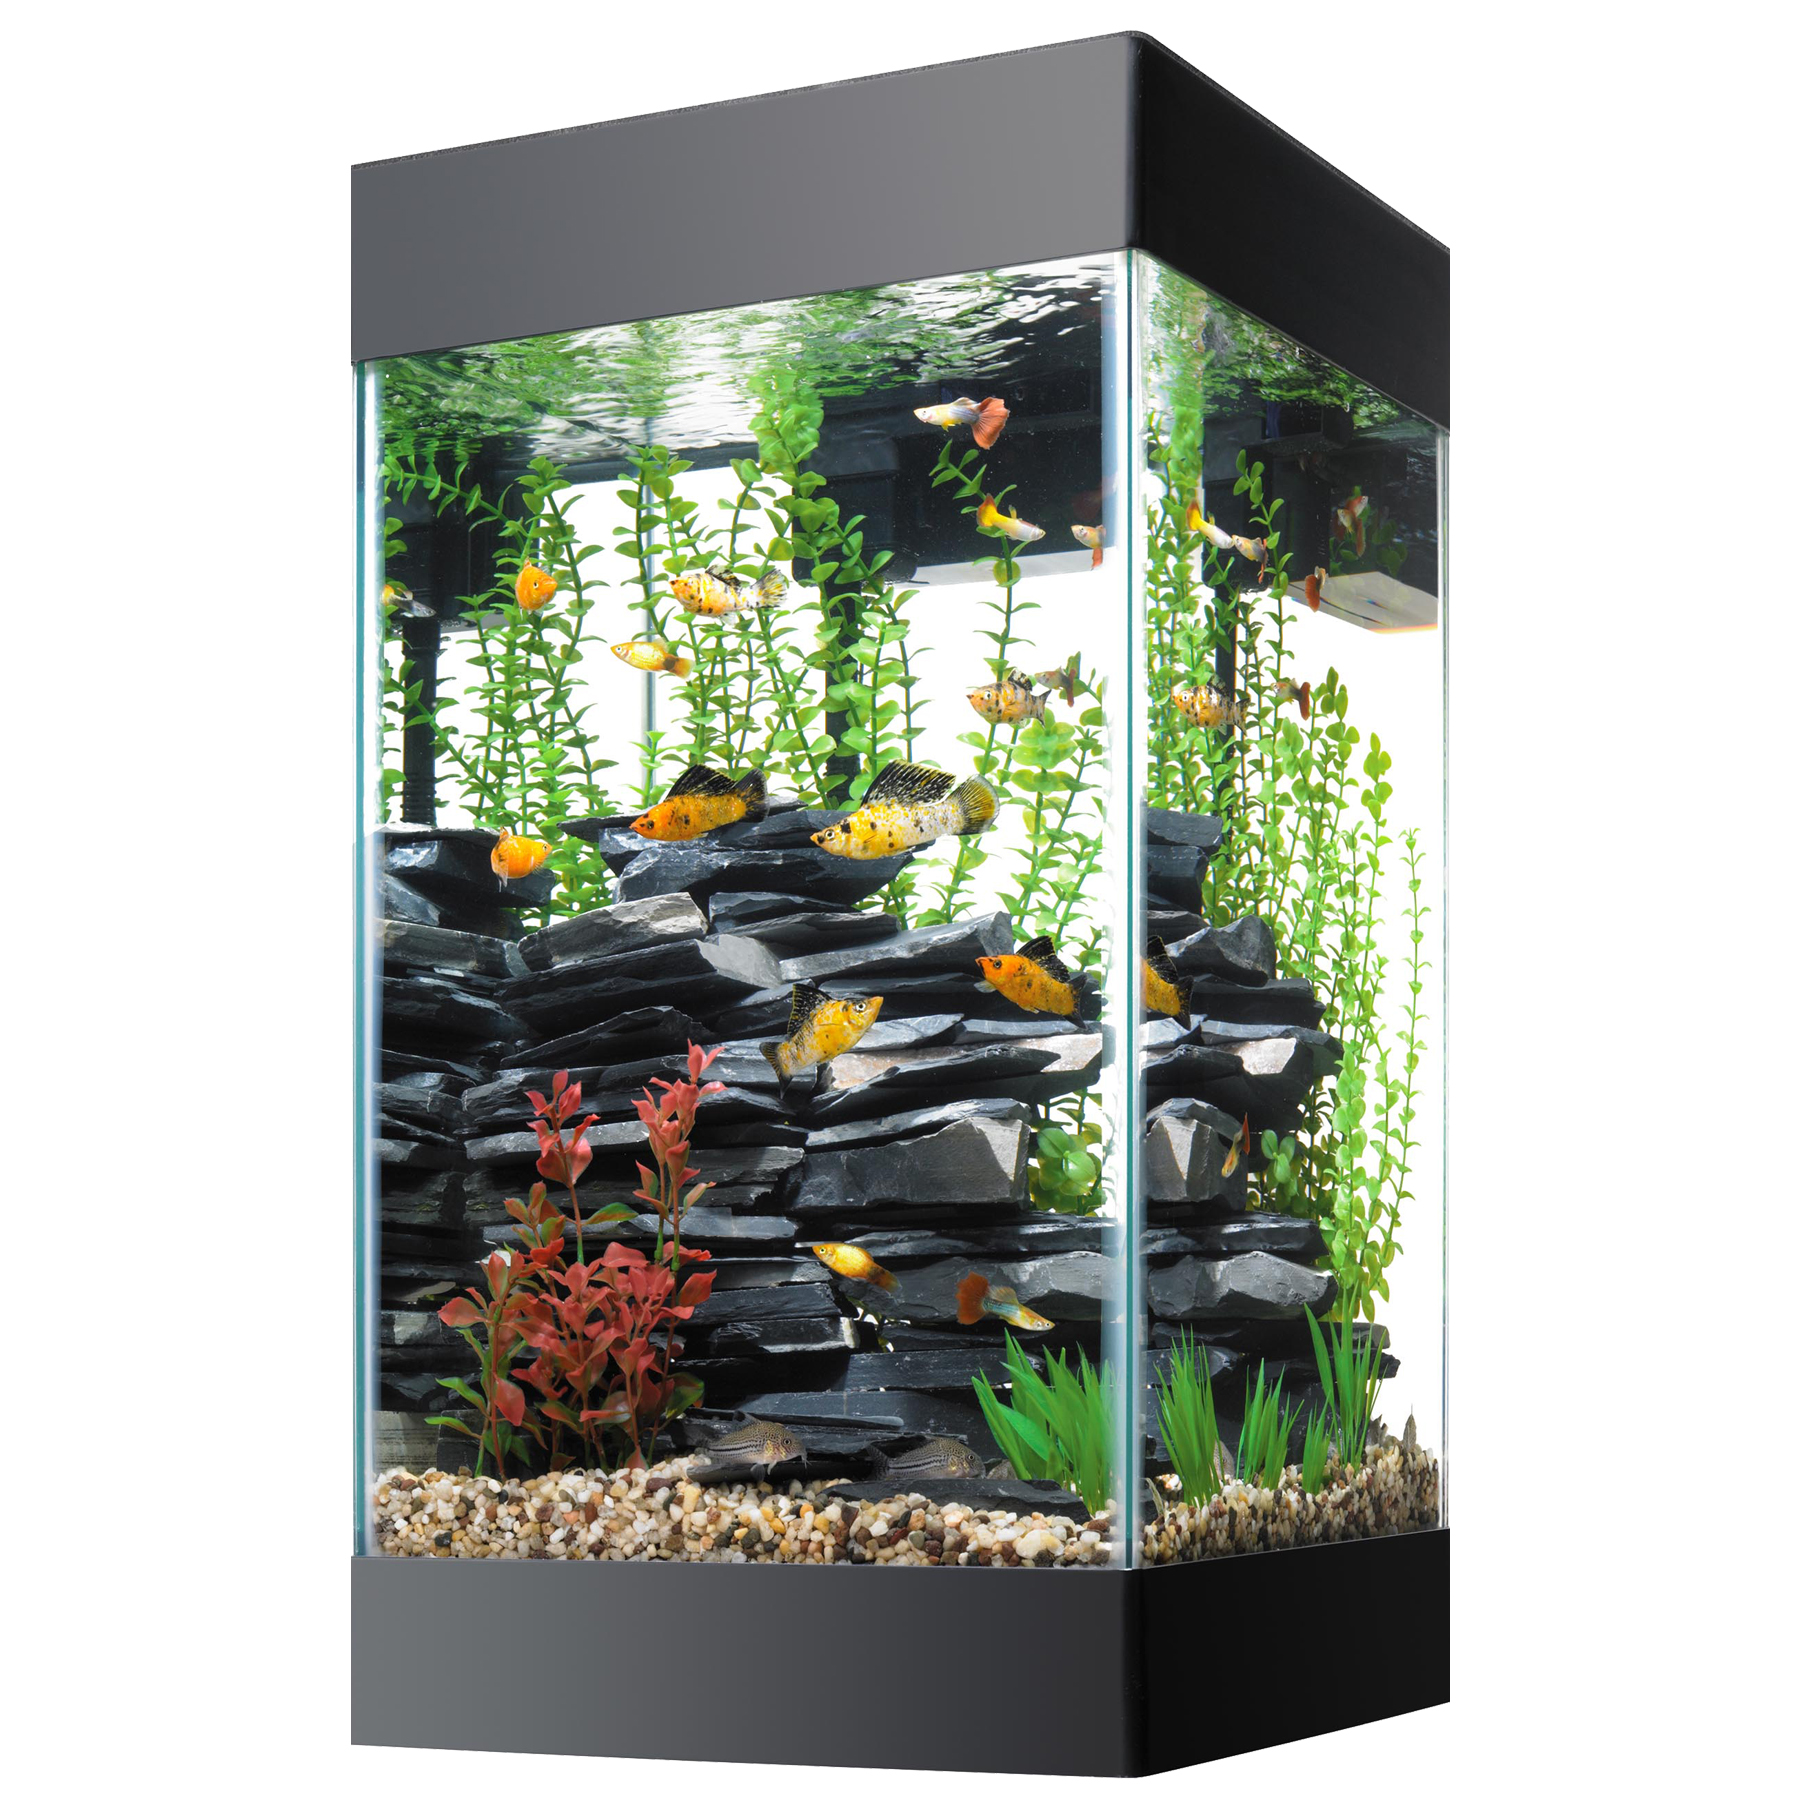 Fish new products wilmette pet center for Fish for a 10 gallon tank